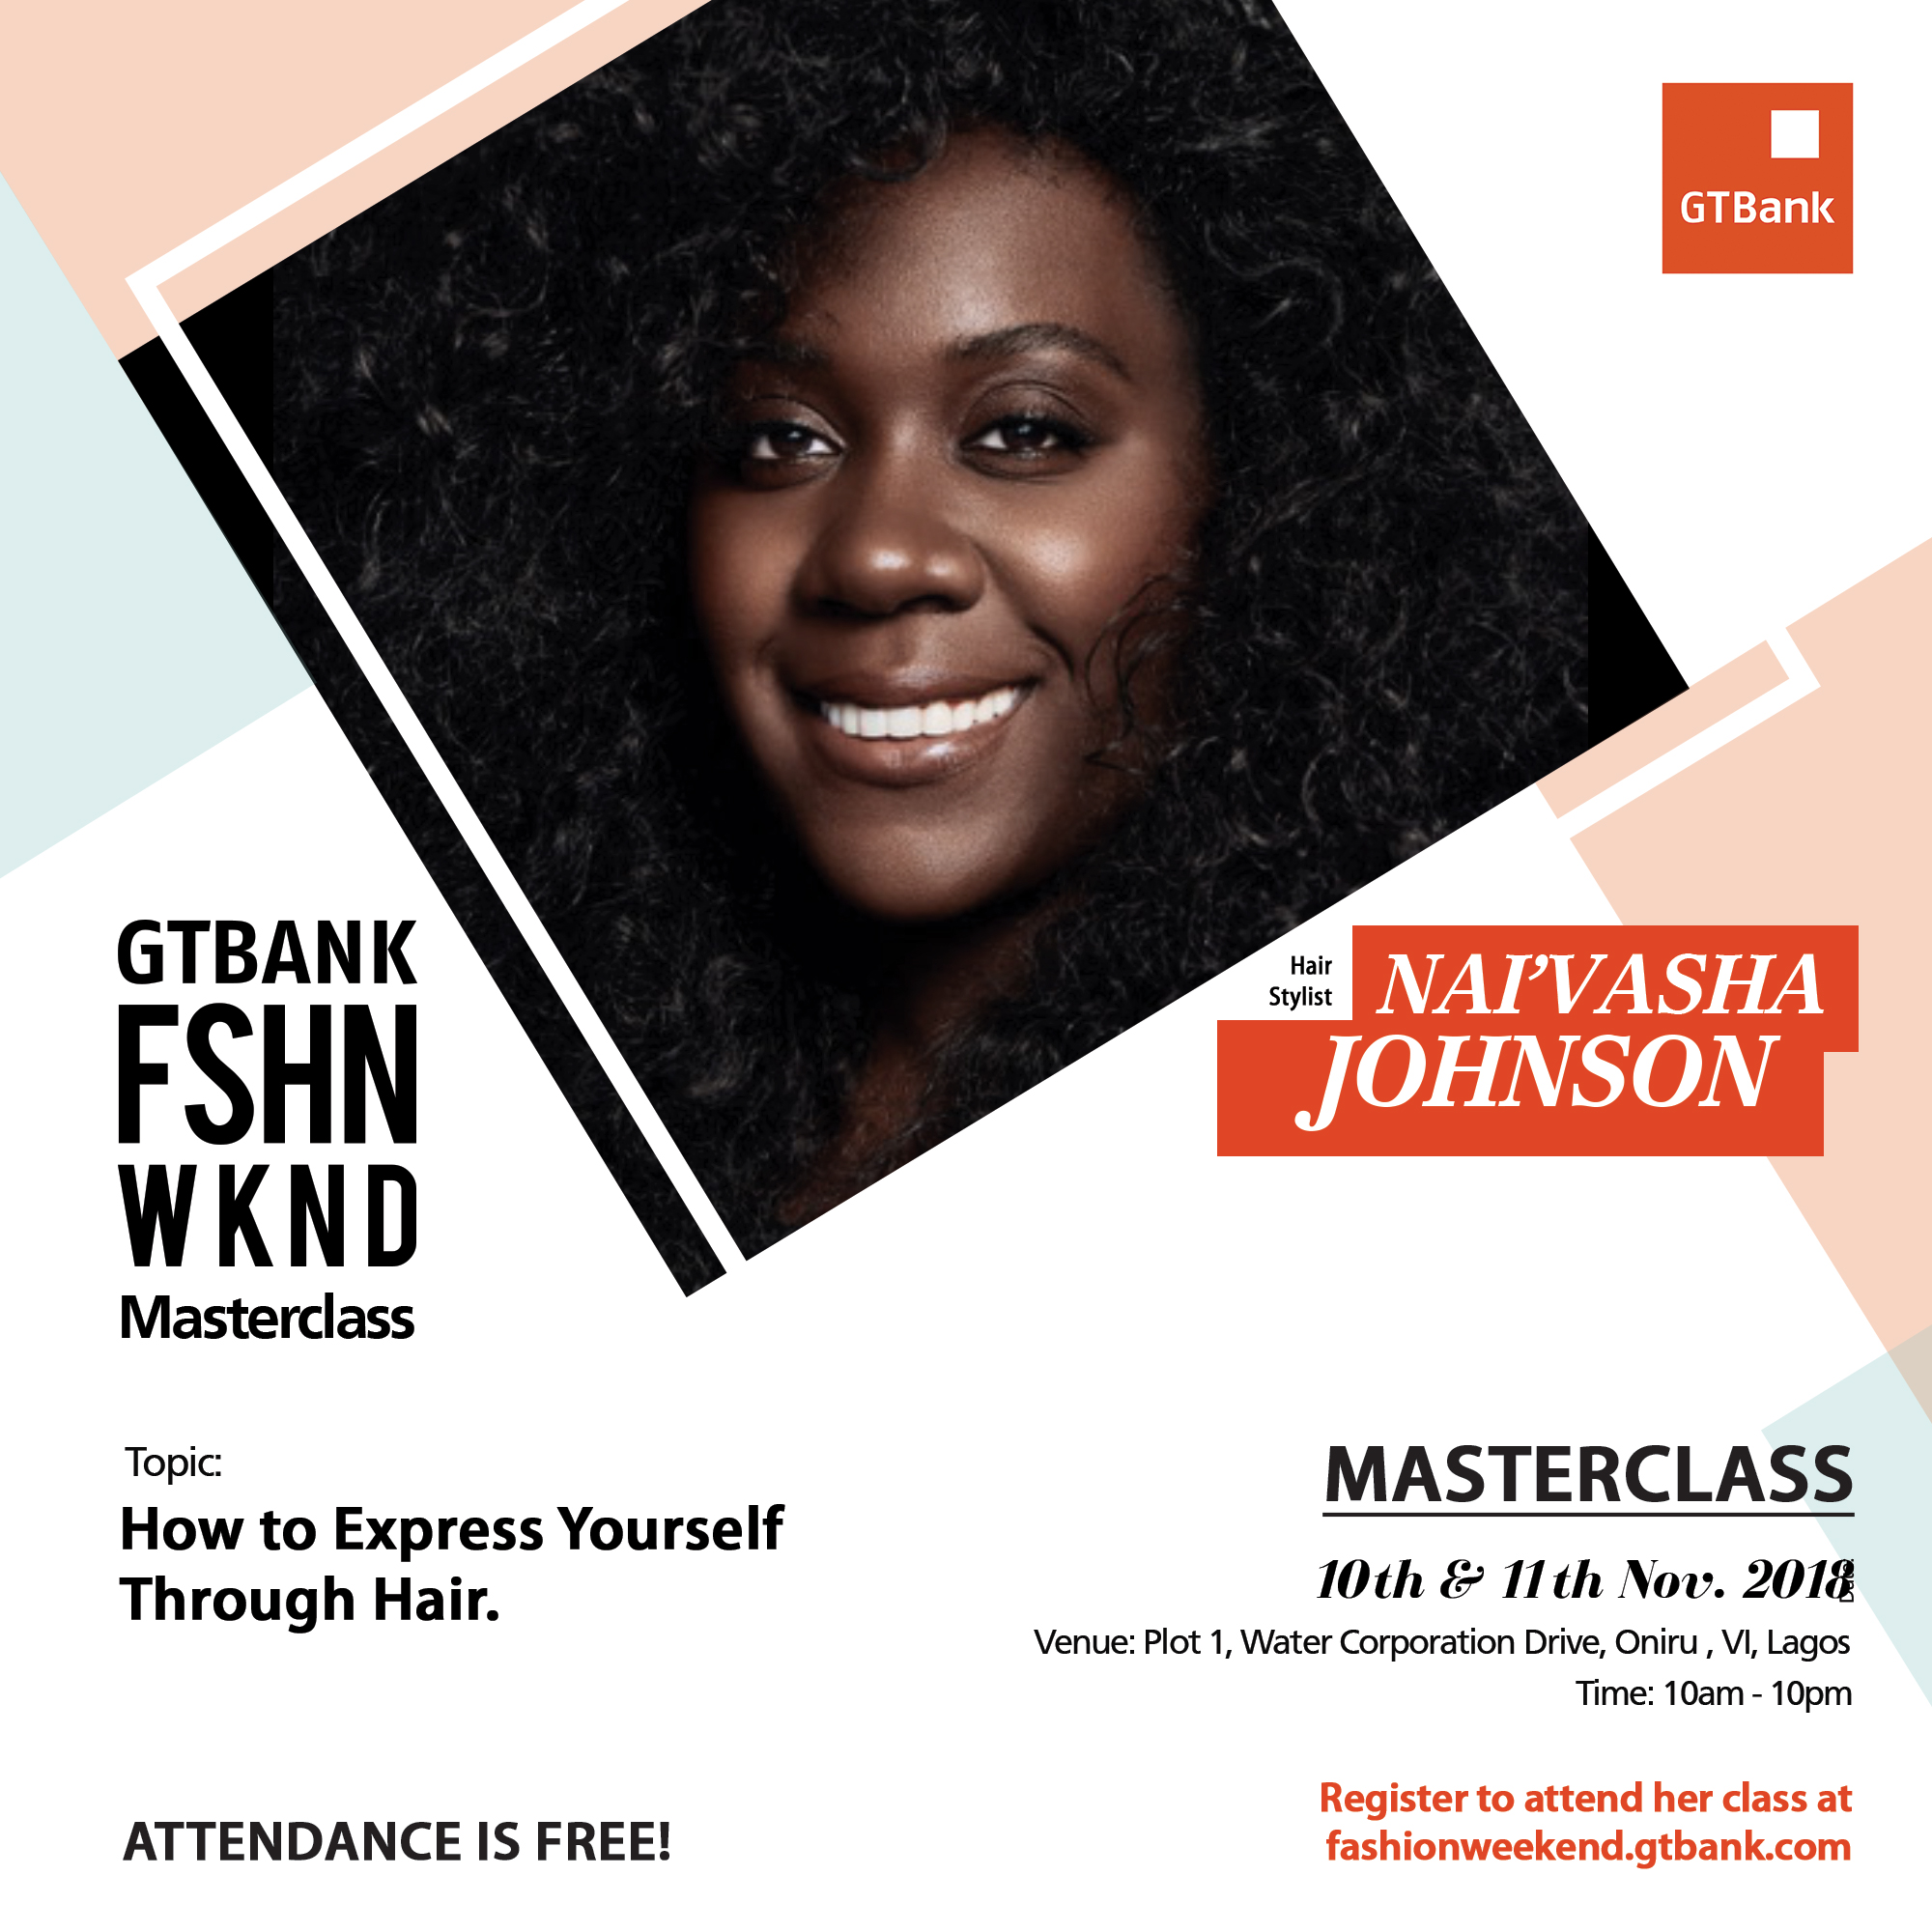 Hairstylist, Nai'vasha Johnson billed for GTBank Fashion Weekend Masterclass